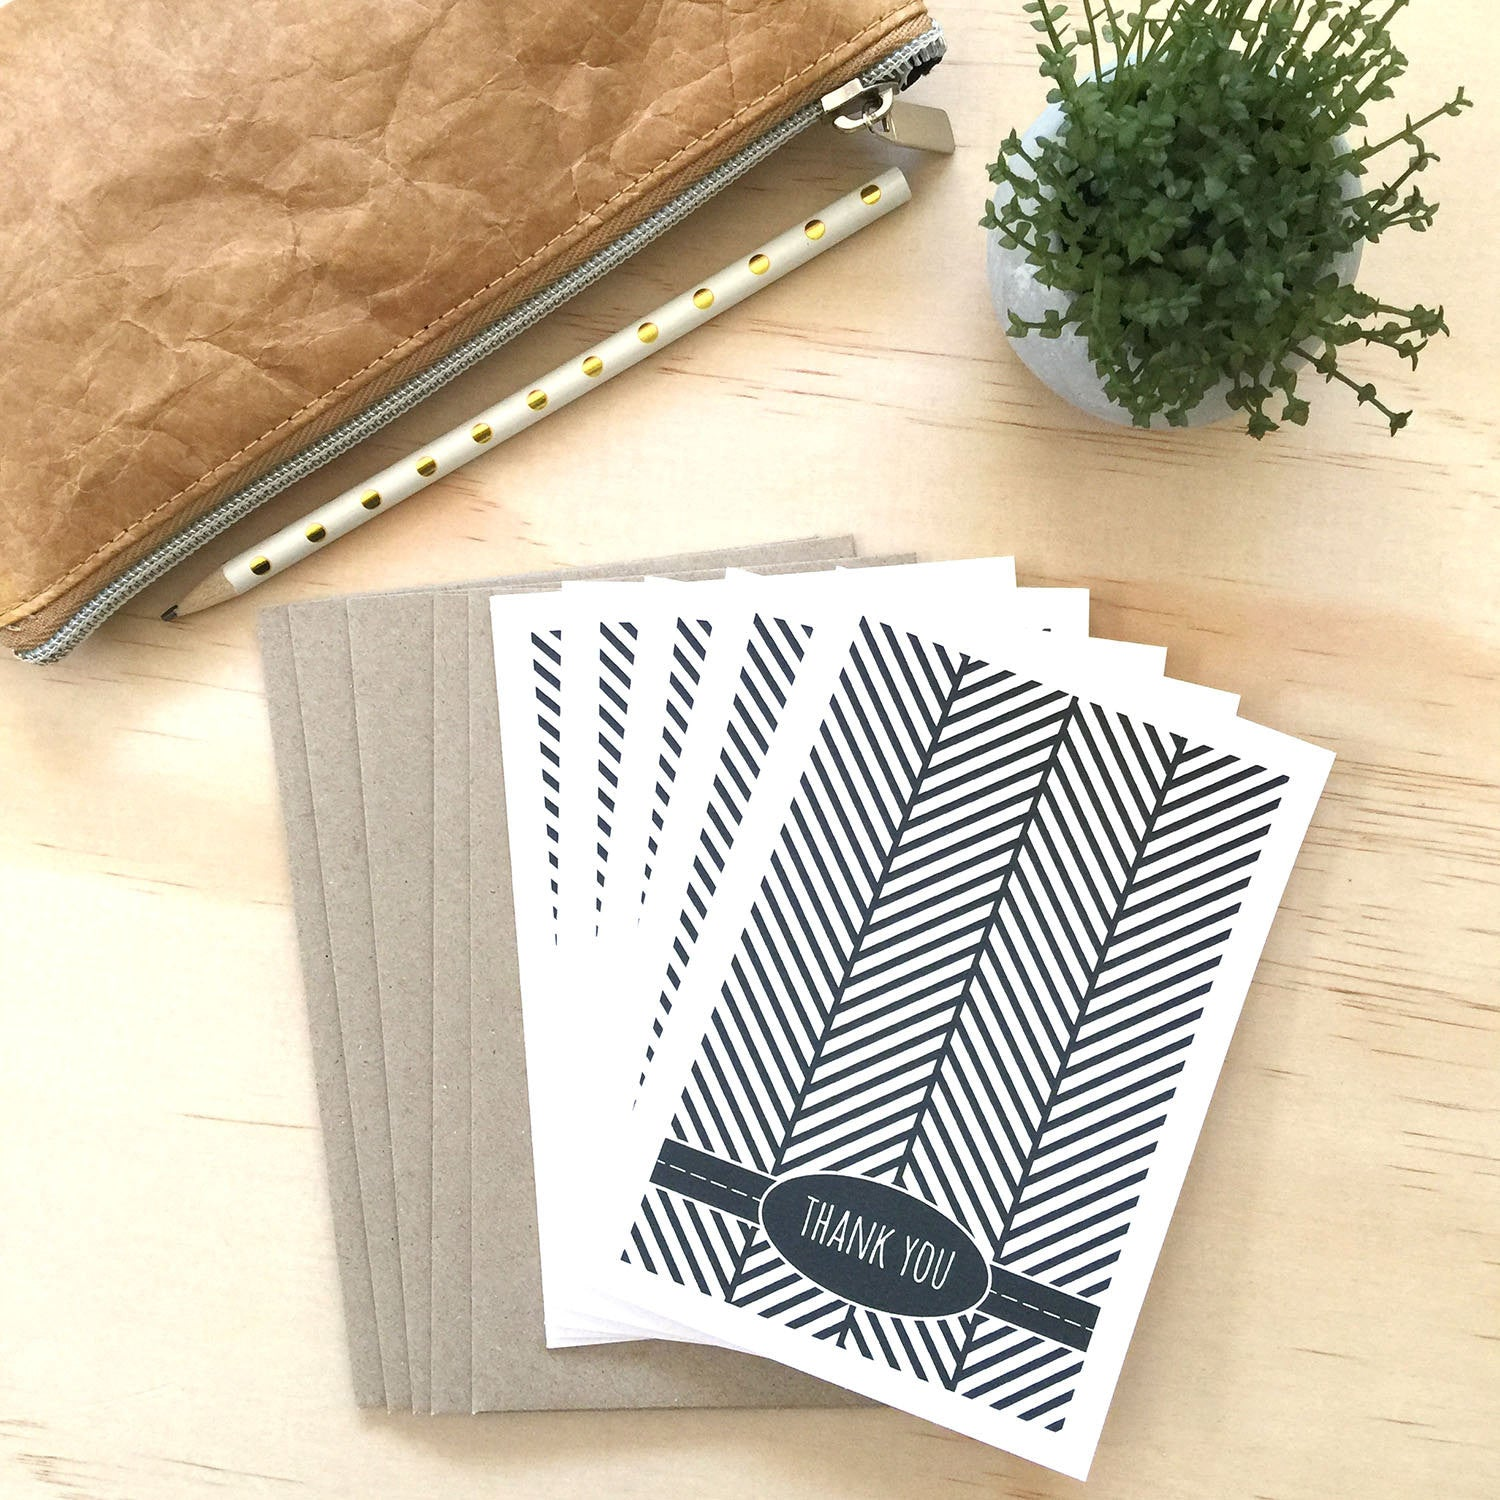 Set of 5 - Black Herringbone Greeting Cards by mumandmehandmadedesigns- An Australian Online Stationery and Card Shop